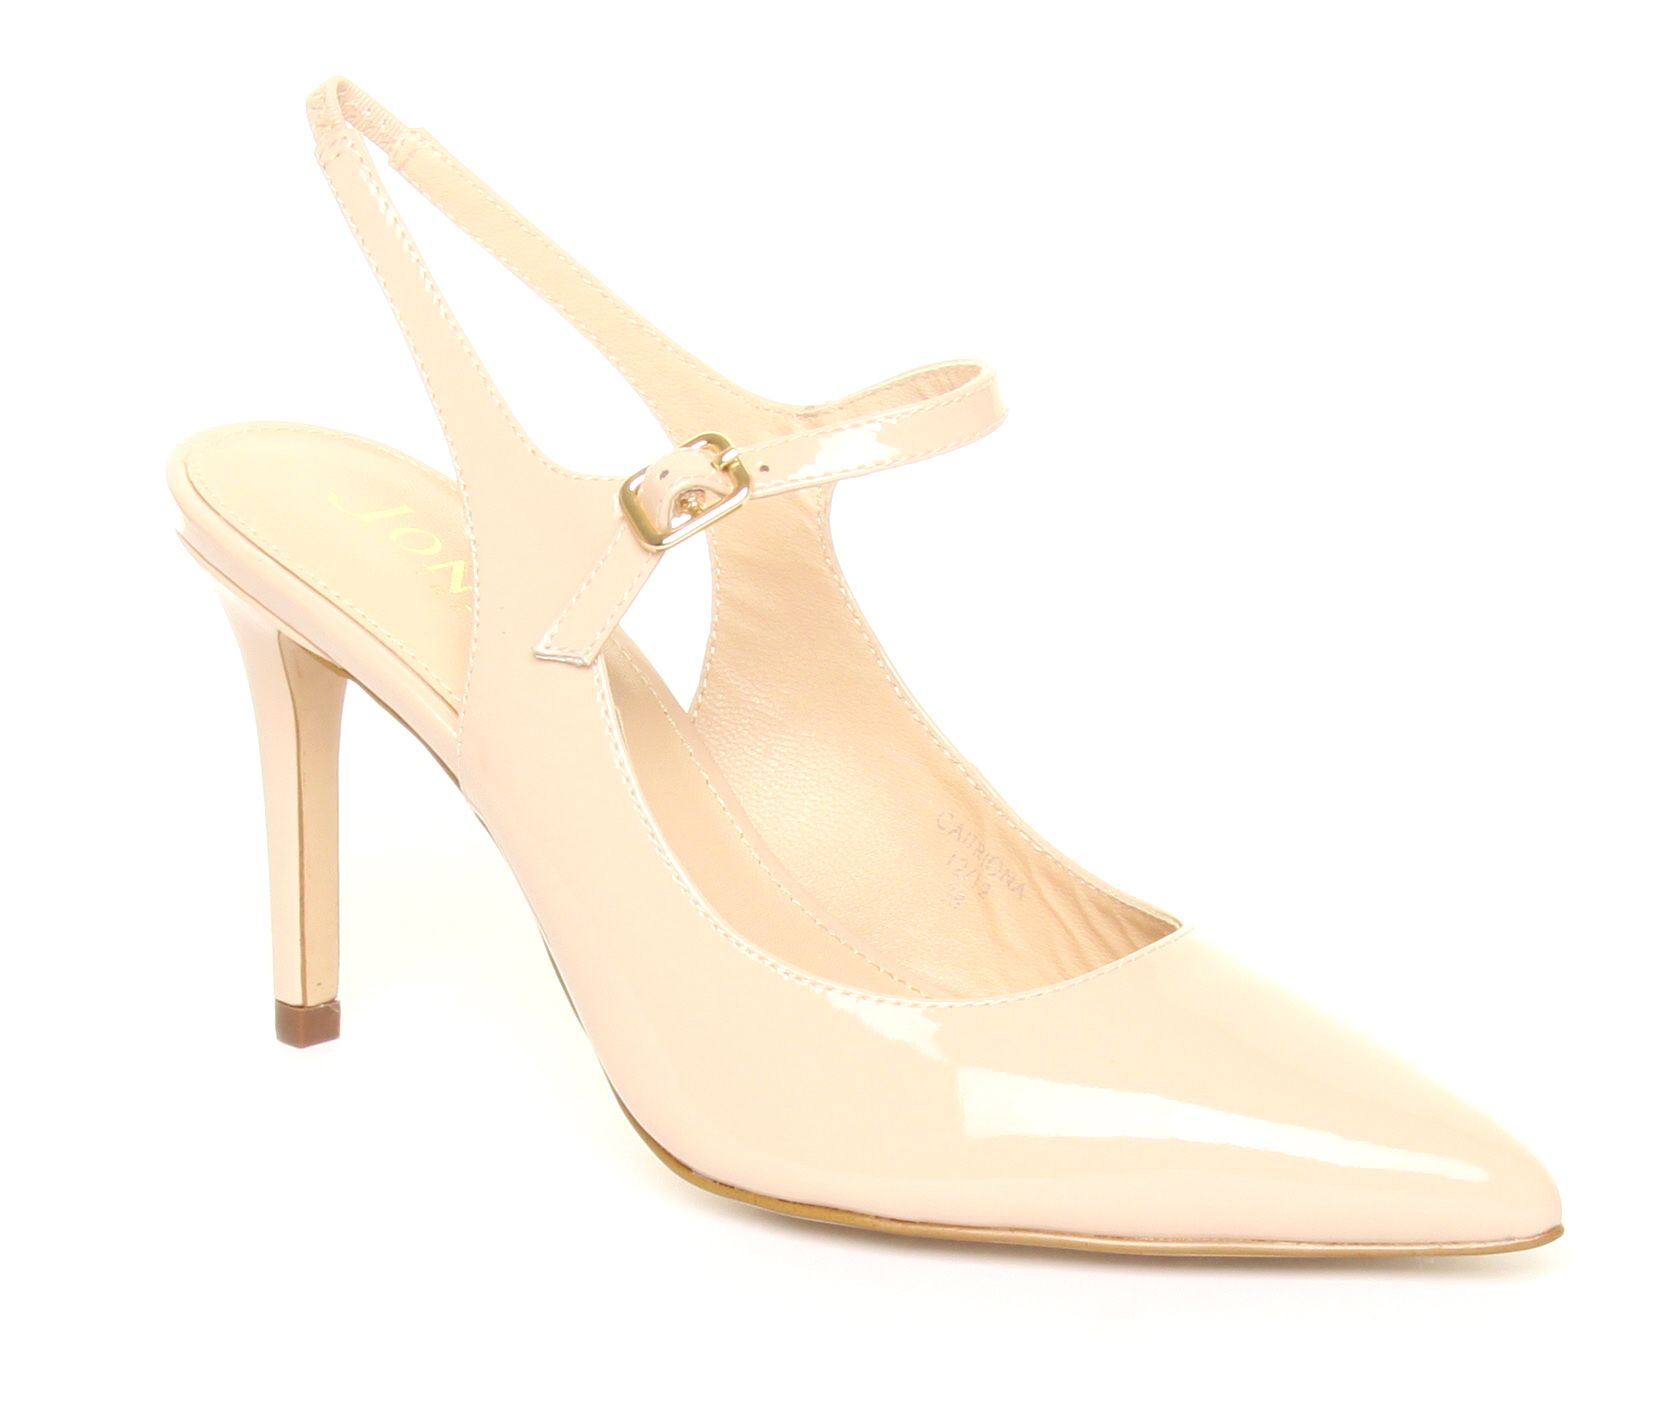 Caitriona heeled sling back shoes